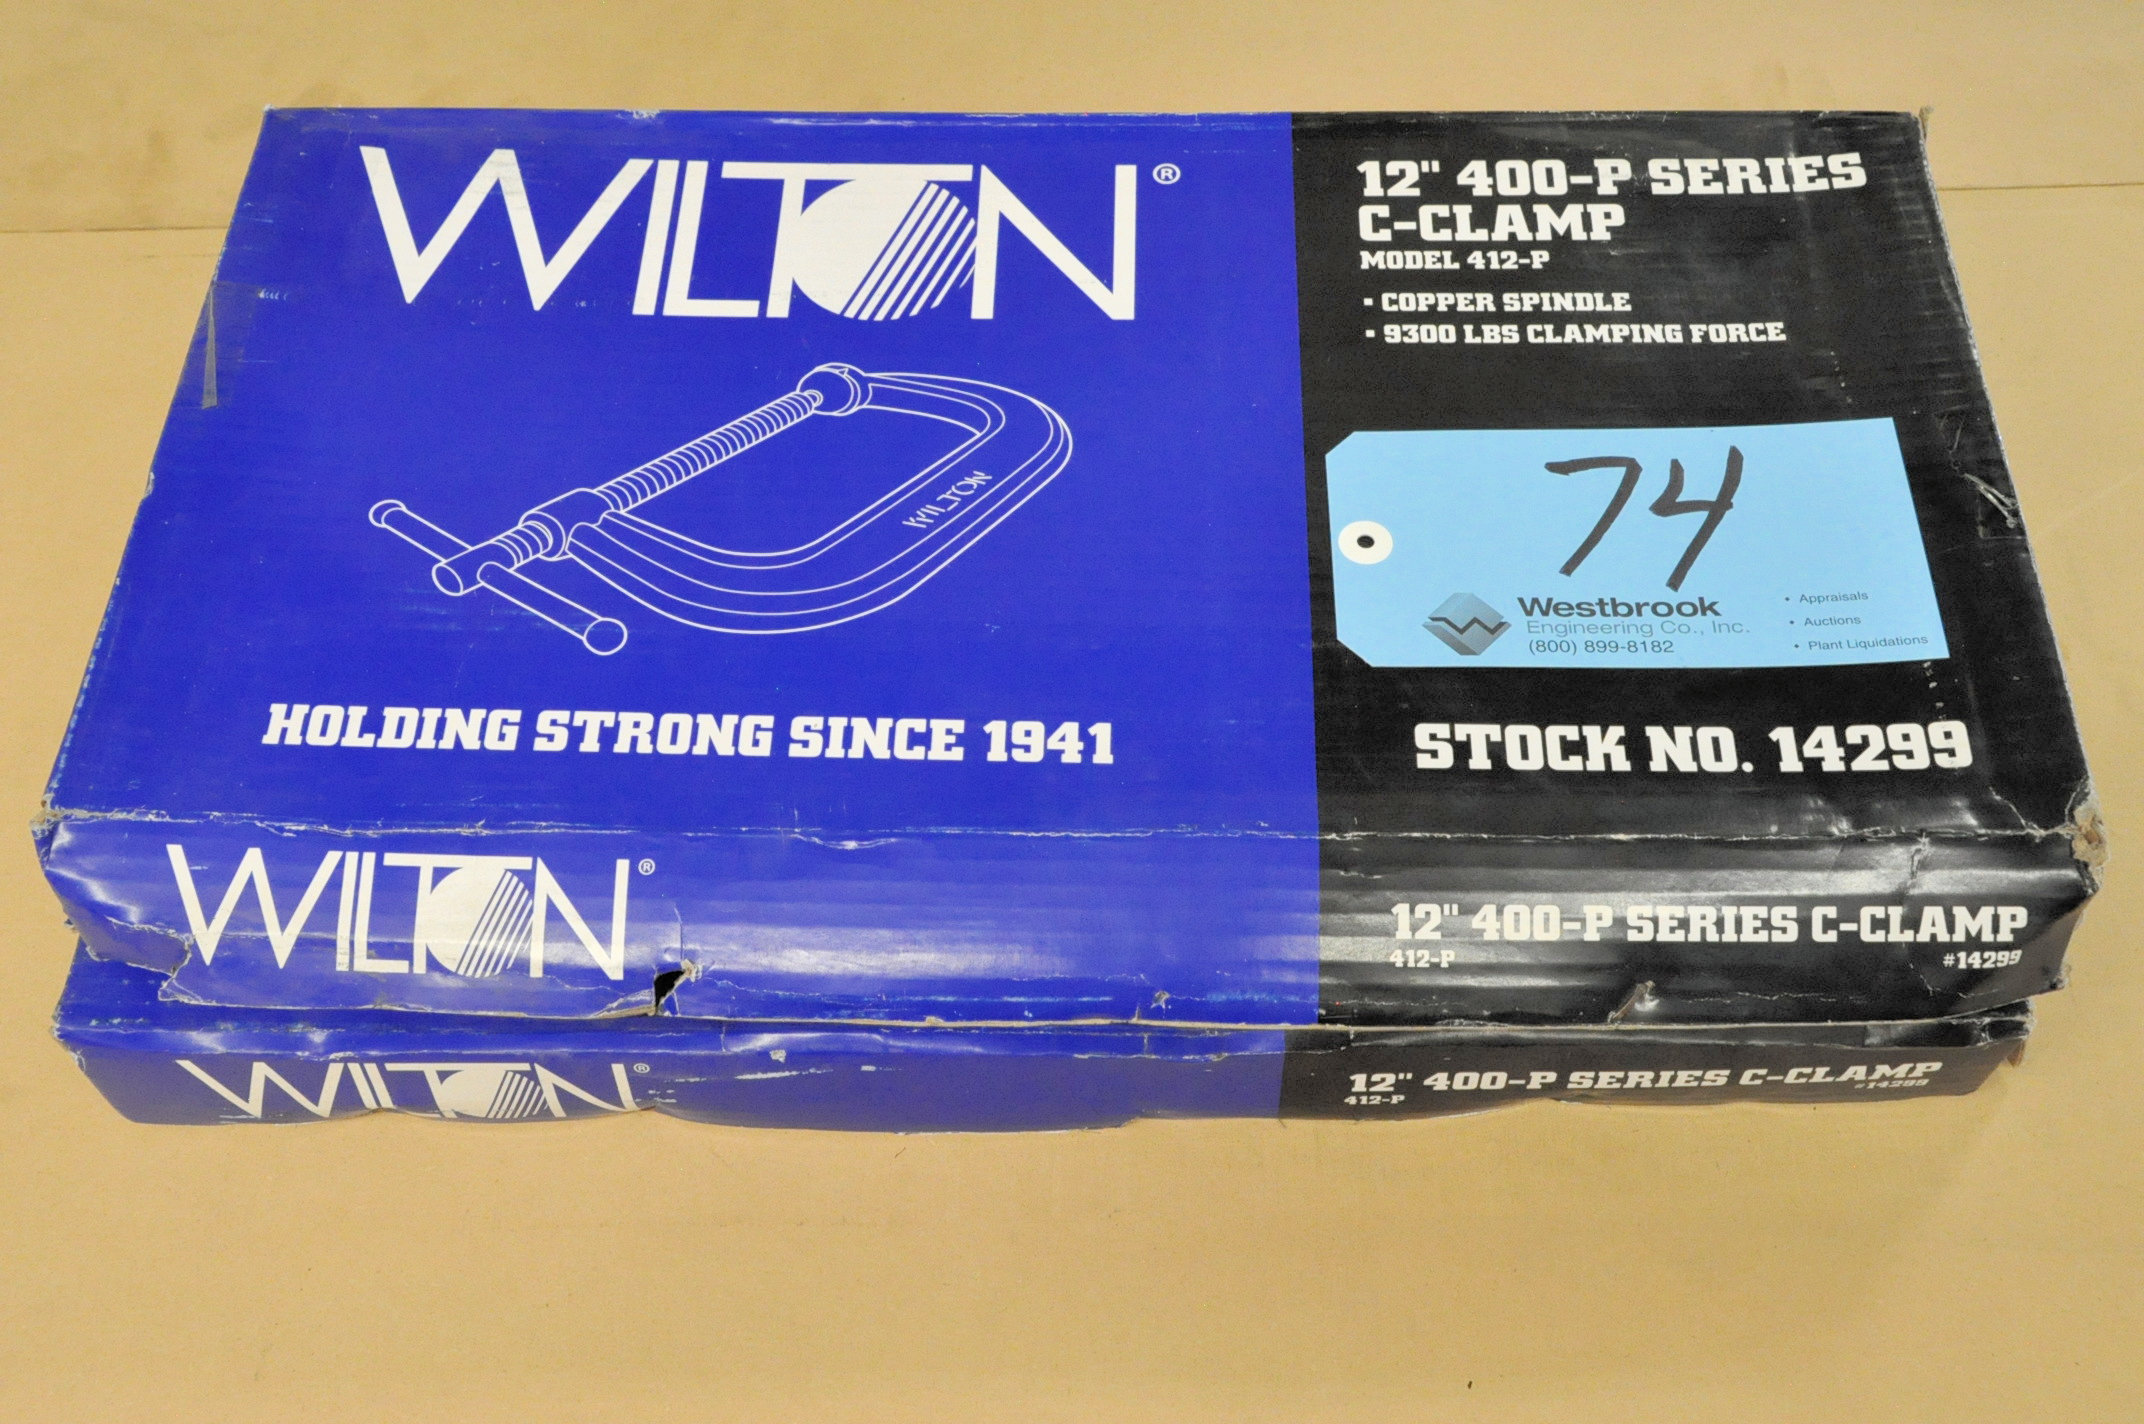 "Lot-(2) Wilton No. 412-P, 12"" C-Clamps, (Packaged)"